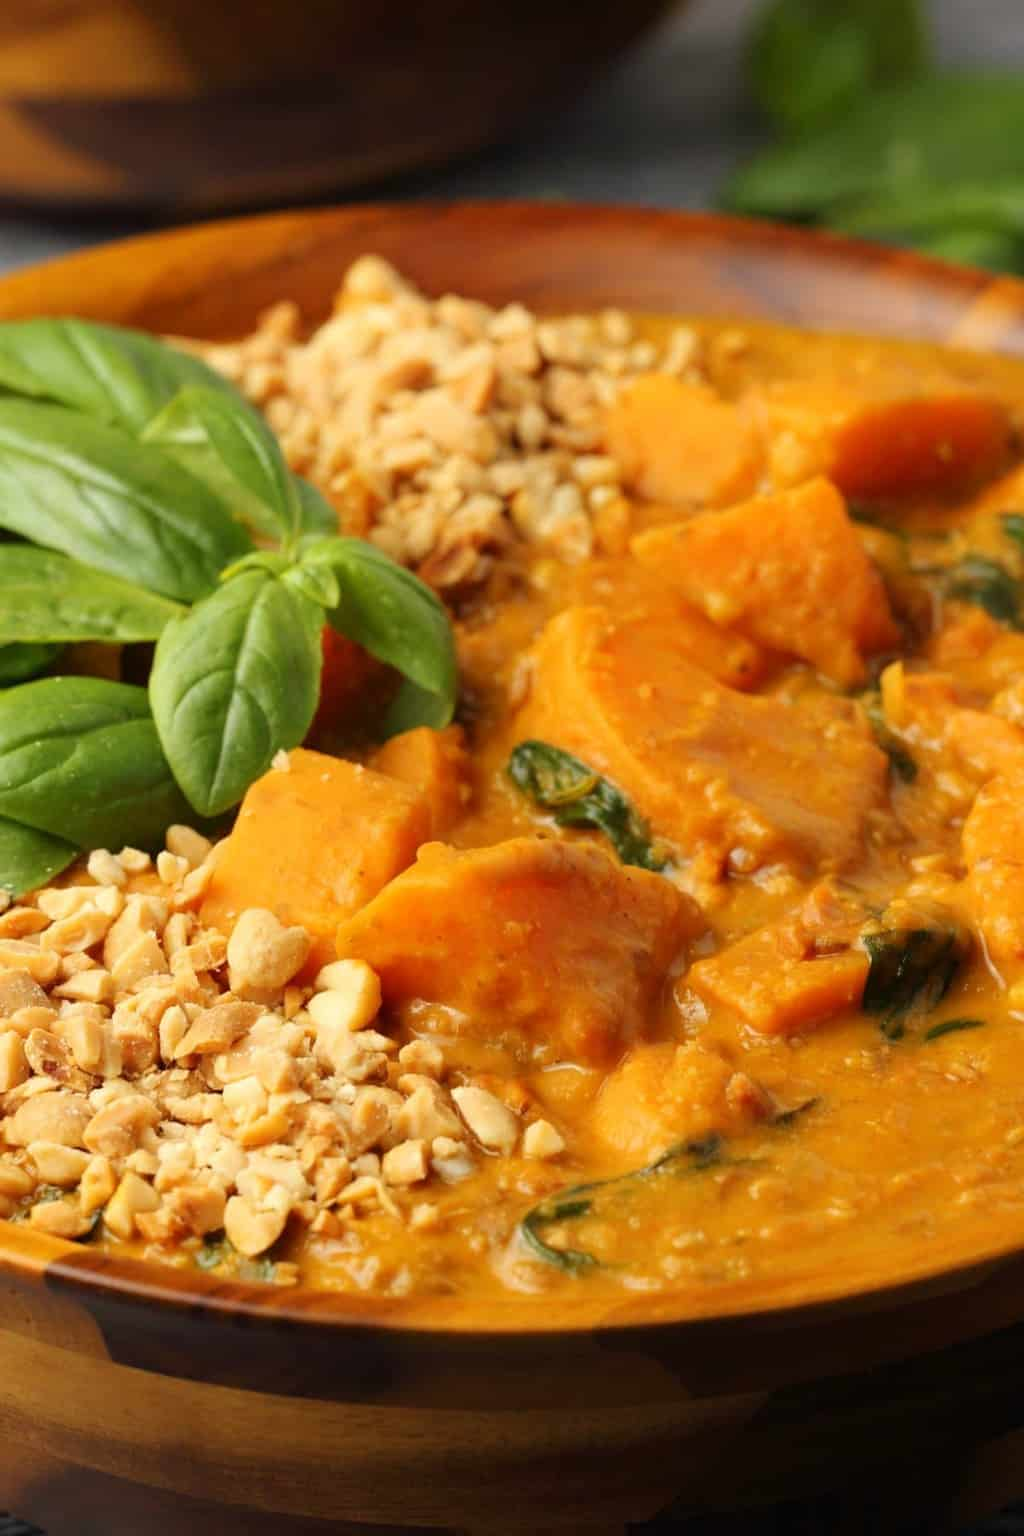 Vegan Sweet Potato Curry topped with fresh basil leaves and crushed peanuts in a wooden bowl.